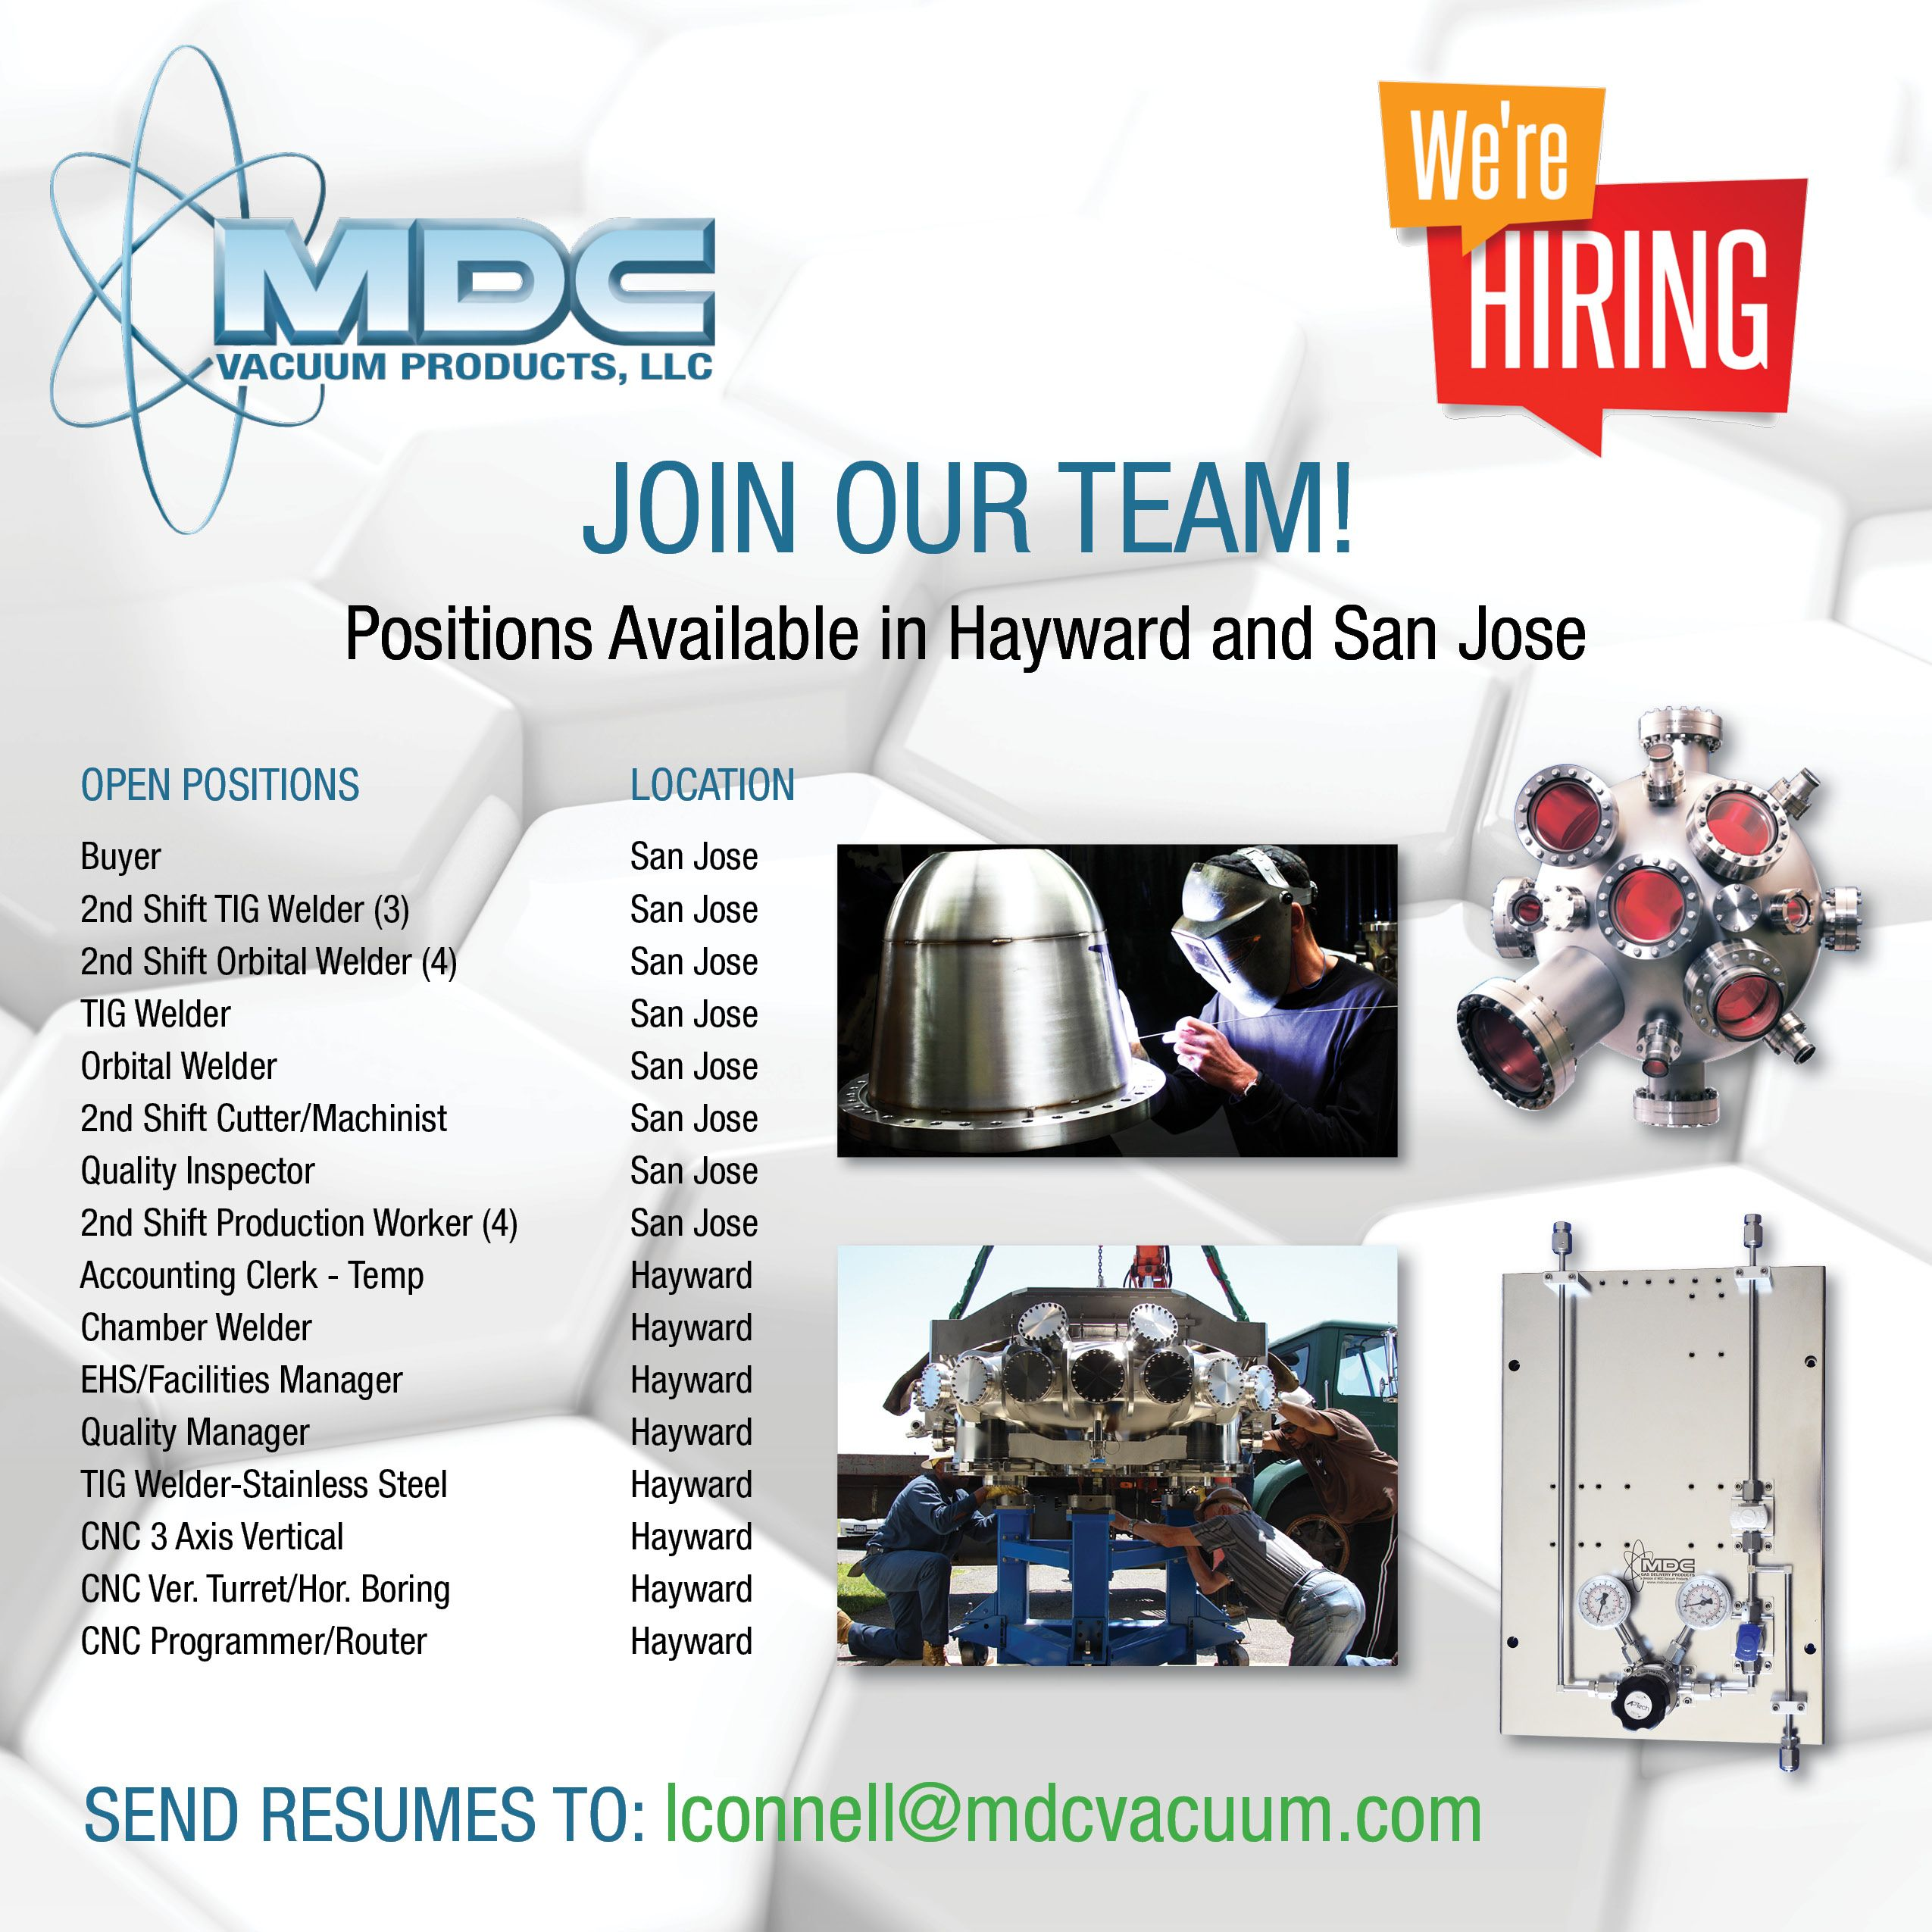 Join Our Team Mdc Currently Has A Number Of Open Positions Available At Our Headquarters In Hayward Ca As Well As Our Gas De Job Opening Vacuums Gas Delivery